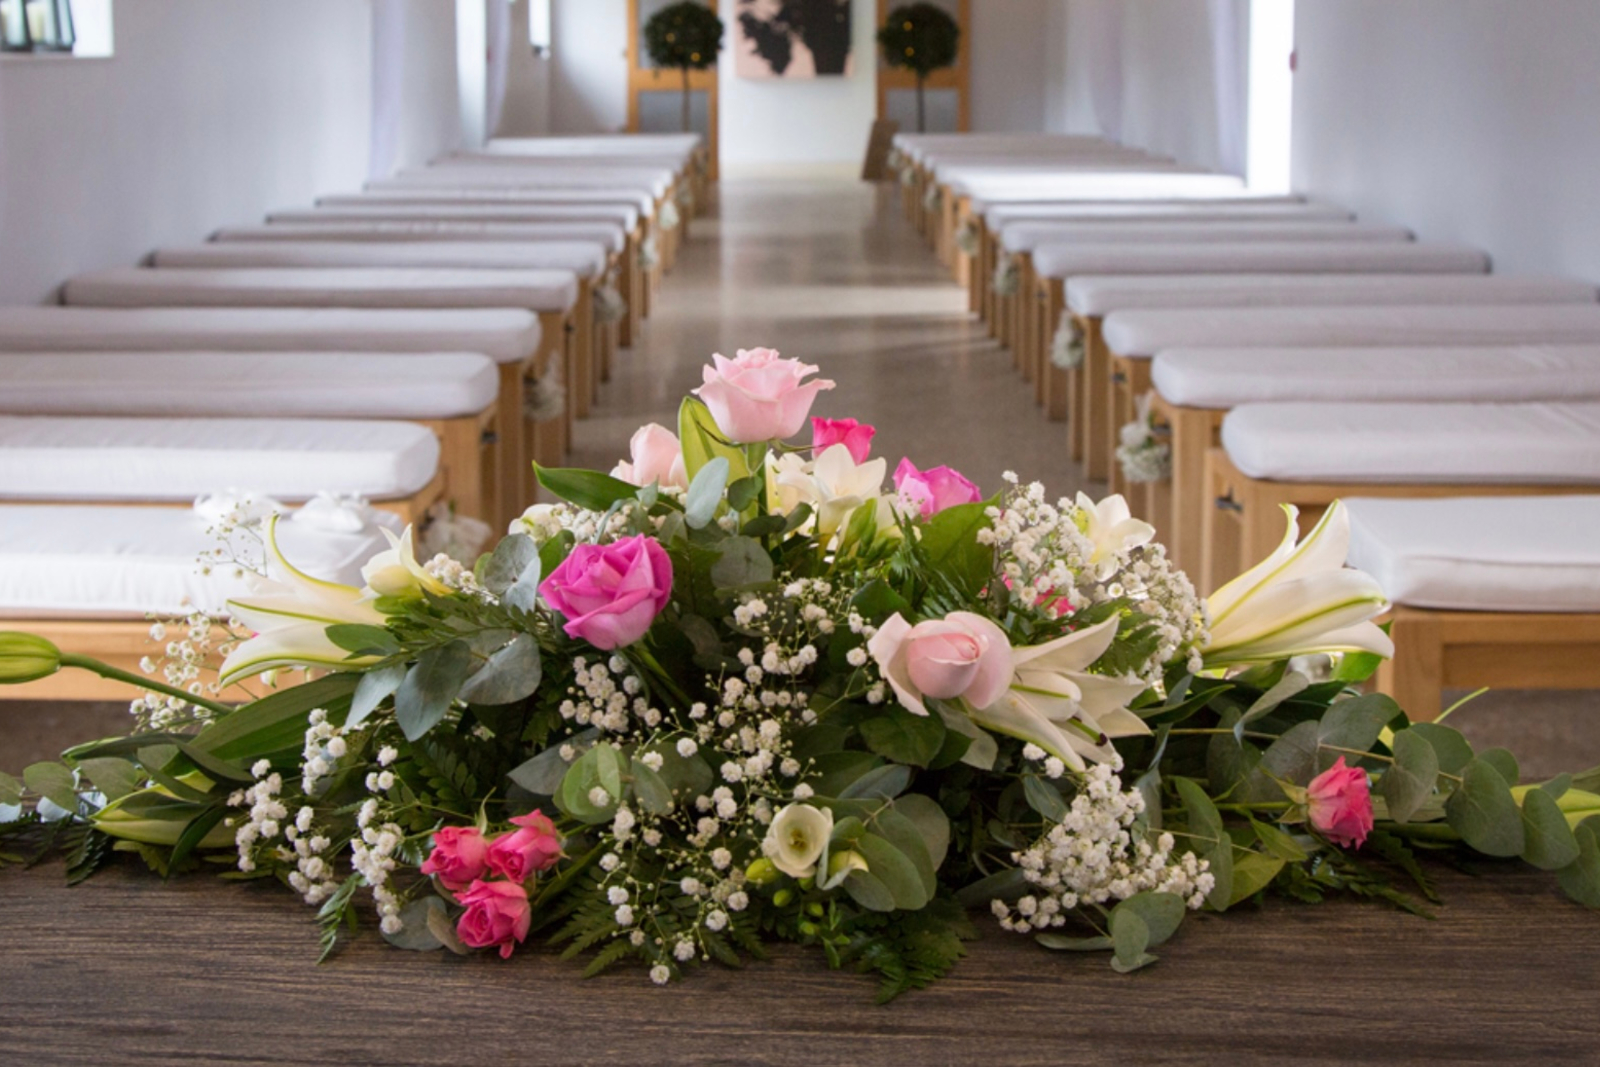 funeral ceremony flowers